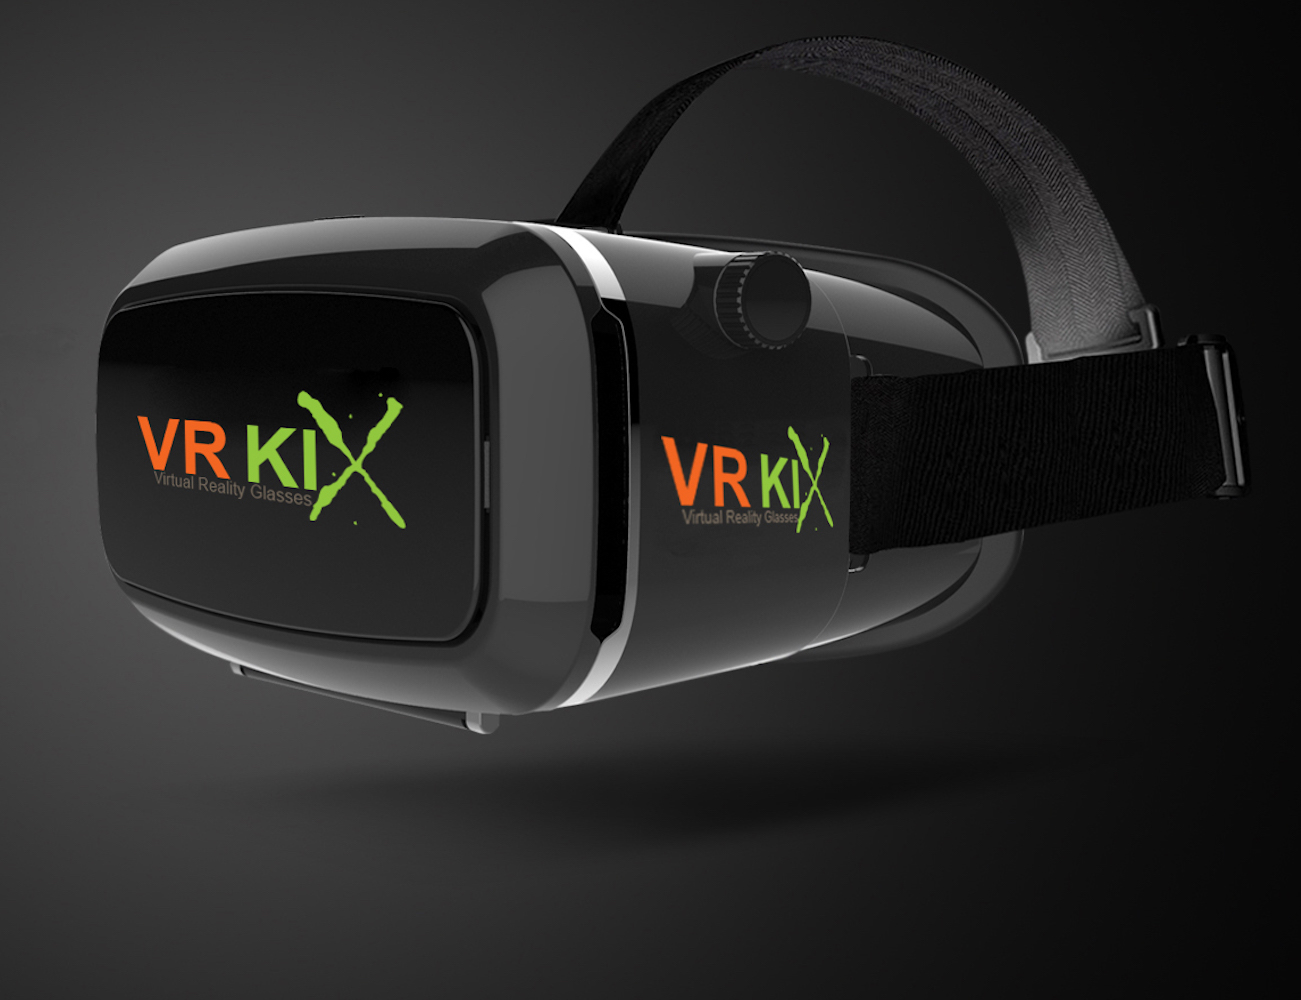 Smartphone-Enabled Virtual Reality Headset by VRKiX